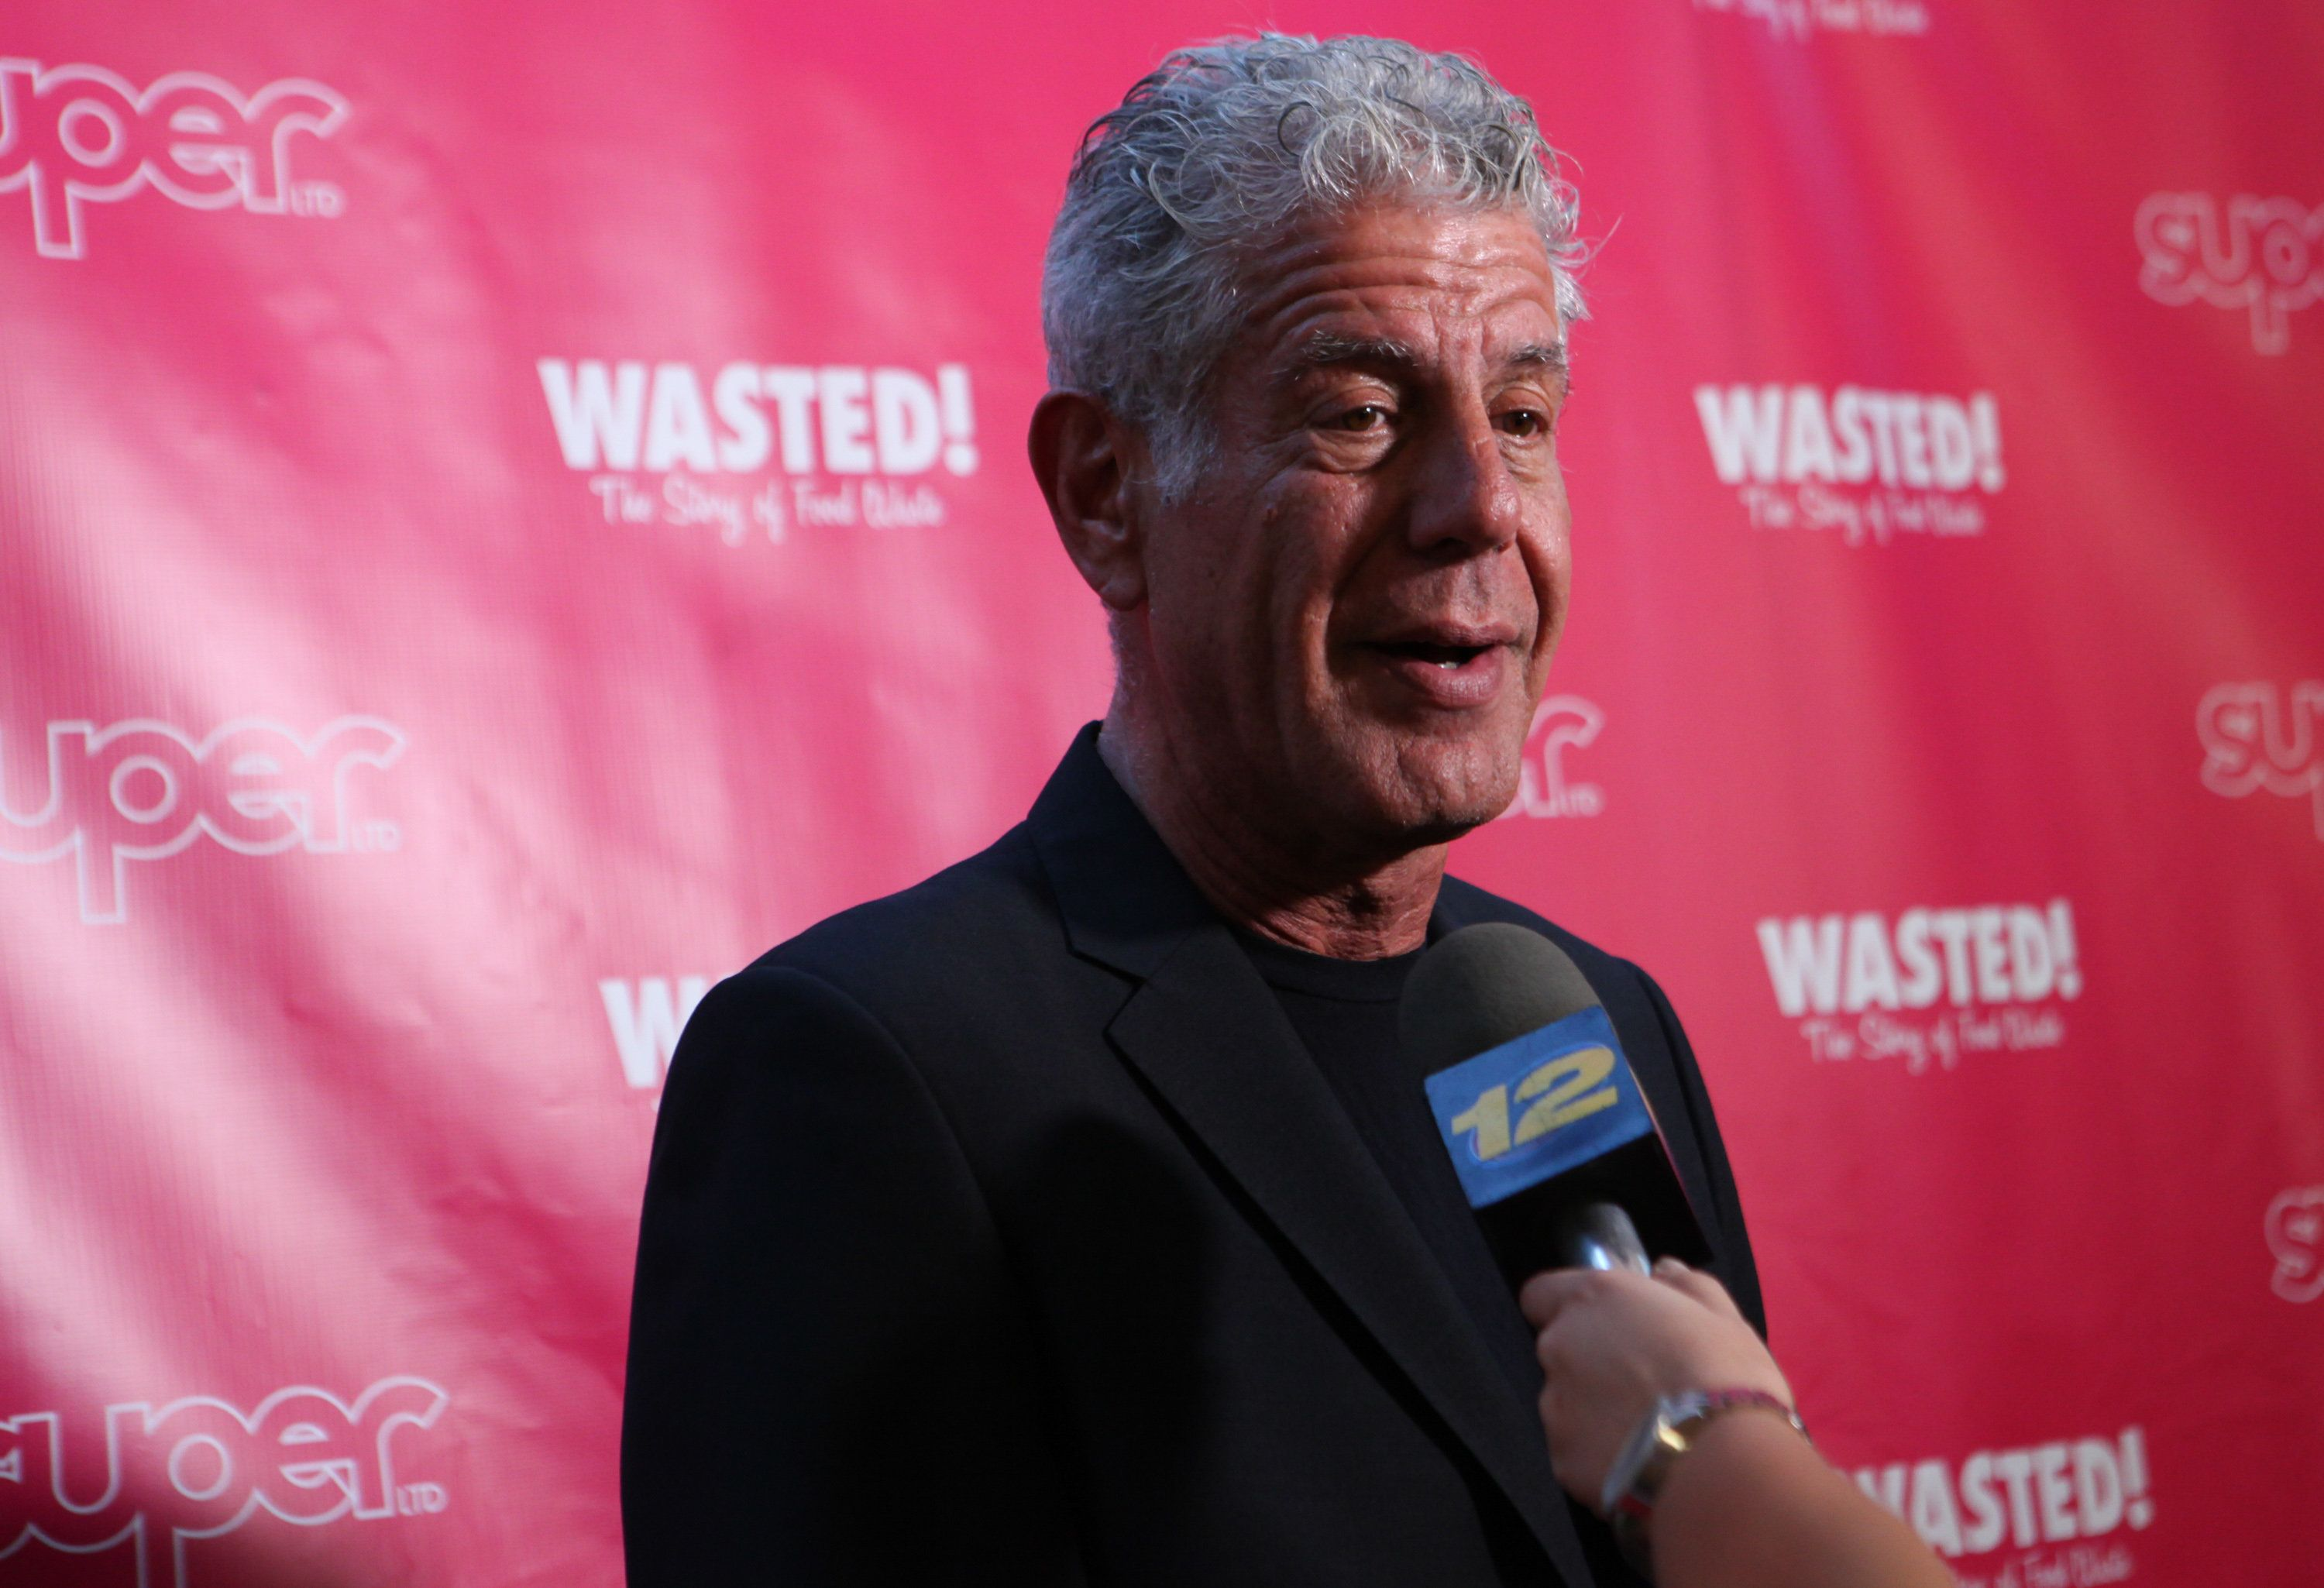 NEW YORK, NY - OCTOBER 05:  Anthony Bourdain attends 'Wasted! The Story Of Food Waste' New York Premiere at Alamo Drafthouse Cinema on October 5, 2017 in the Brooklyn borough of New York City.  (Photo by Steve Zak Photography/Getty Images)